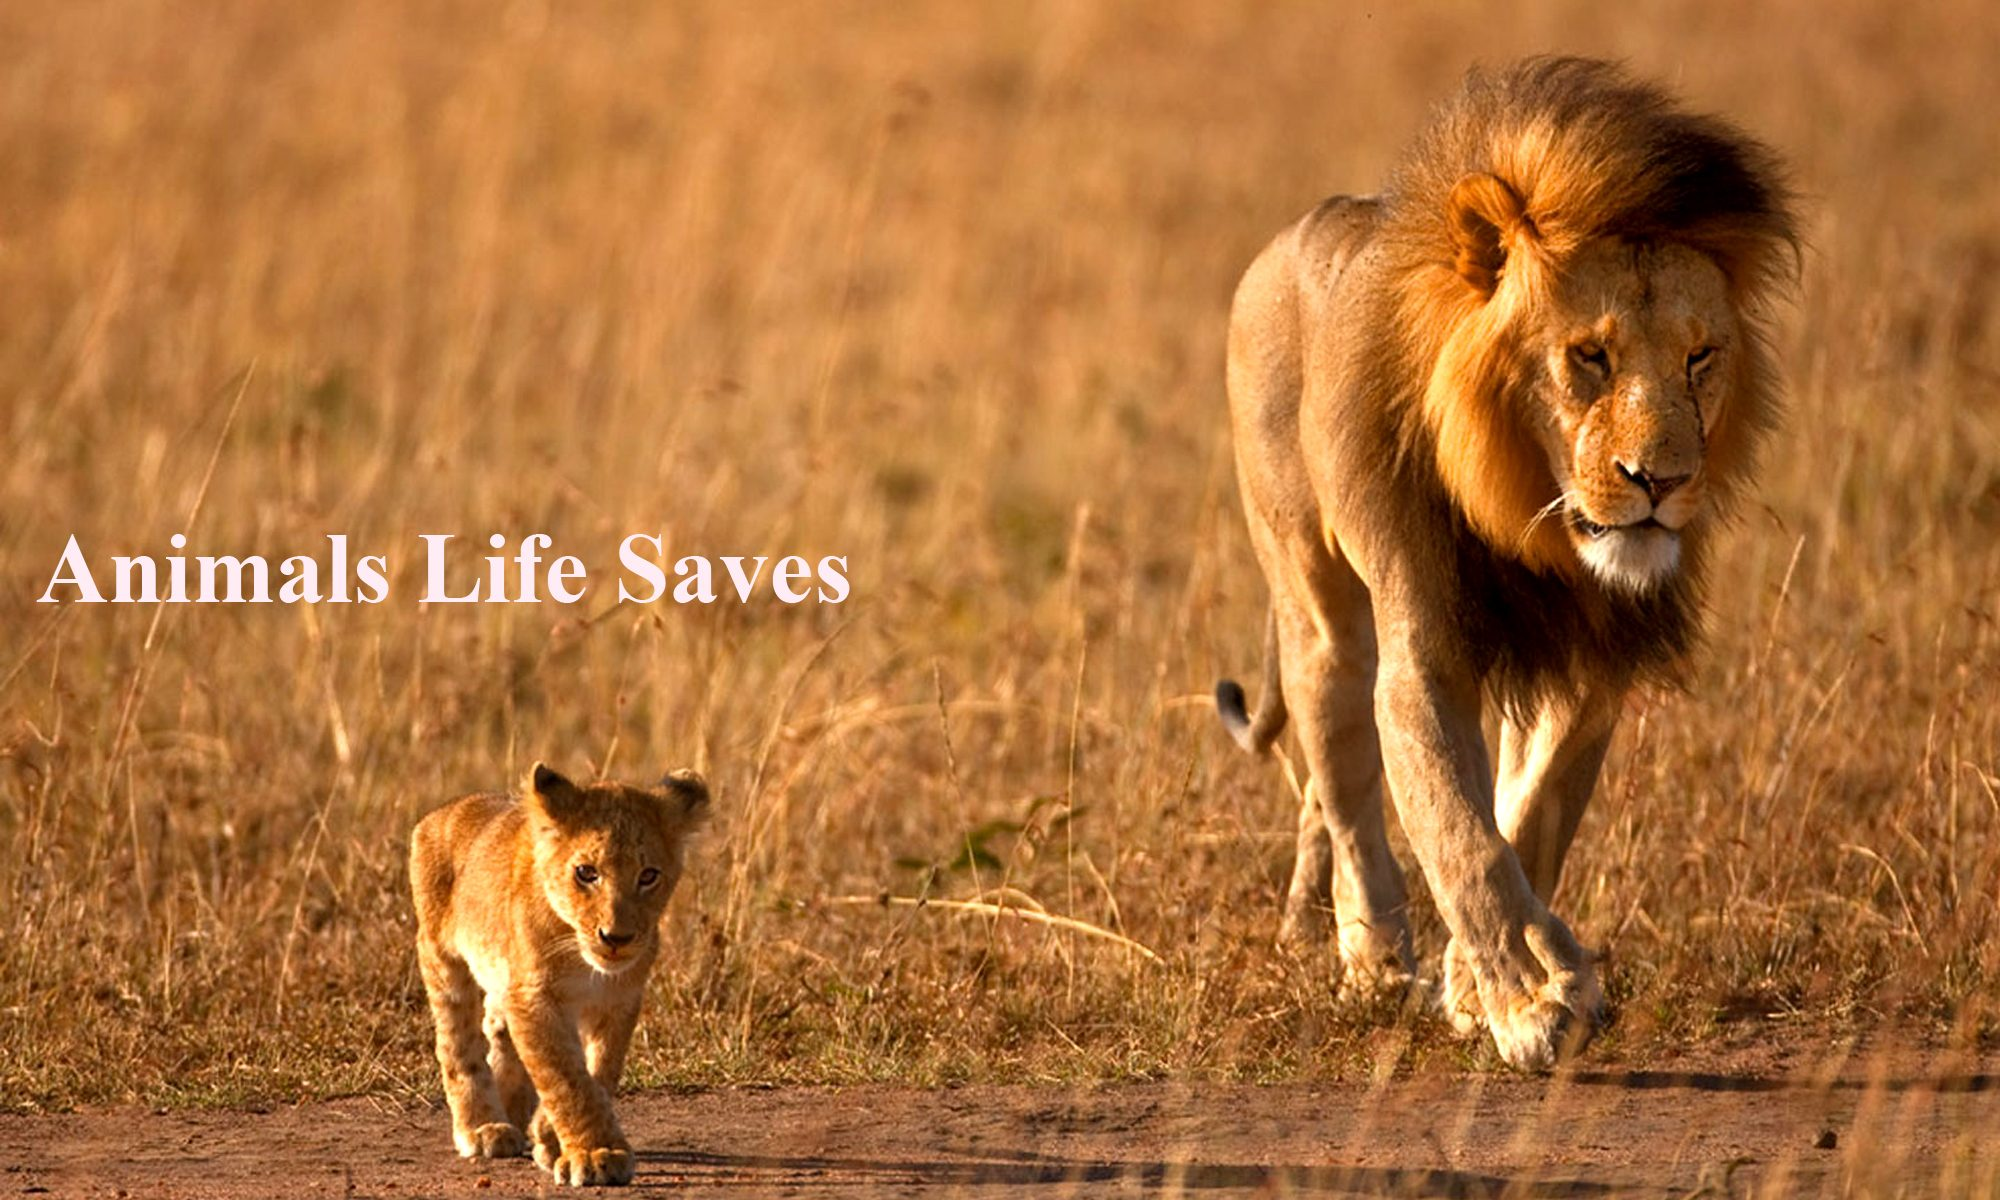 Animals Life Saves